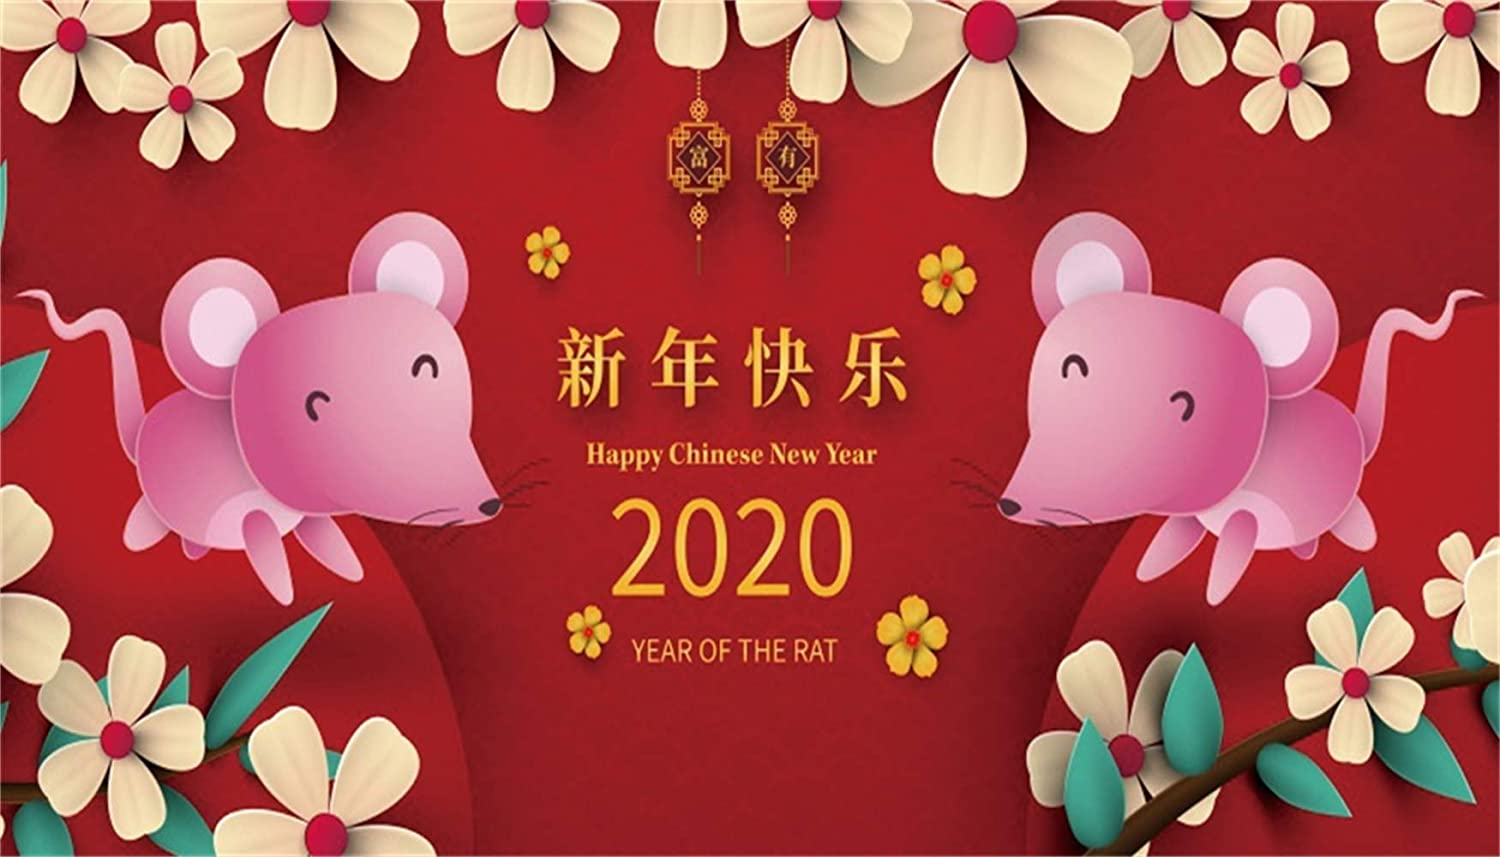 Leowefowa 20x12ft Happy New Year 2020 The Year of The Rat Backdrop Vinyl Cartoon Mouse Yellow Flowers Old Lanterns Red Photography Background New Year Carnival Party Banner Wallpaper Studio